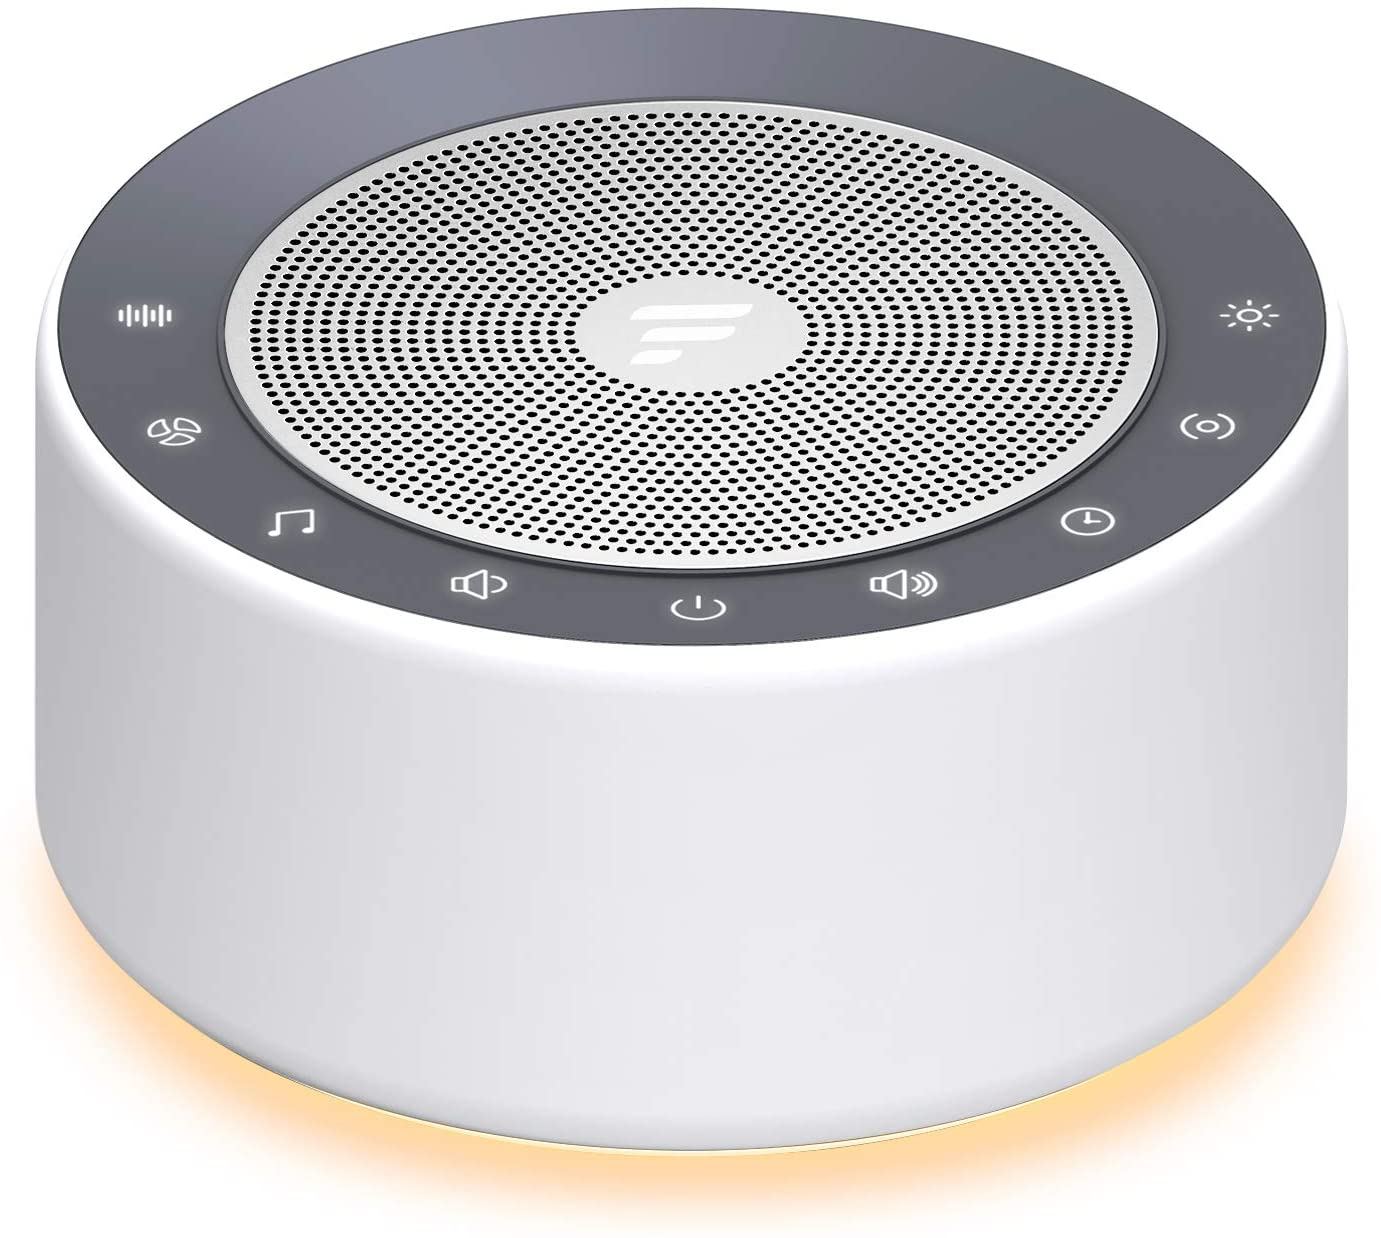 Letsfit Sleep Sound Machine T3